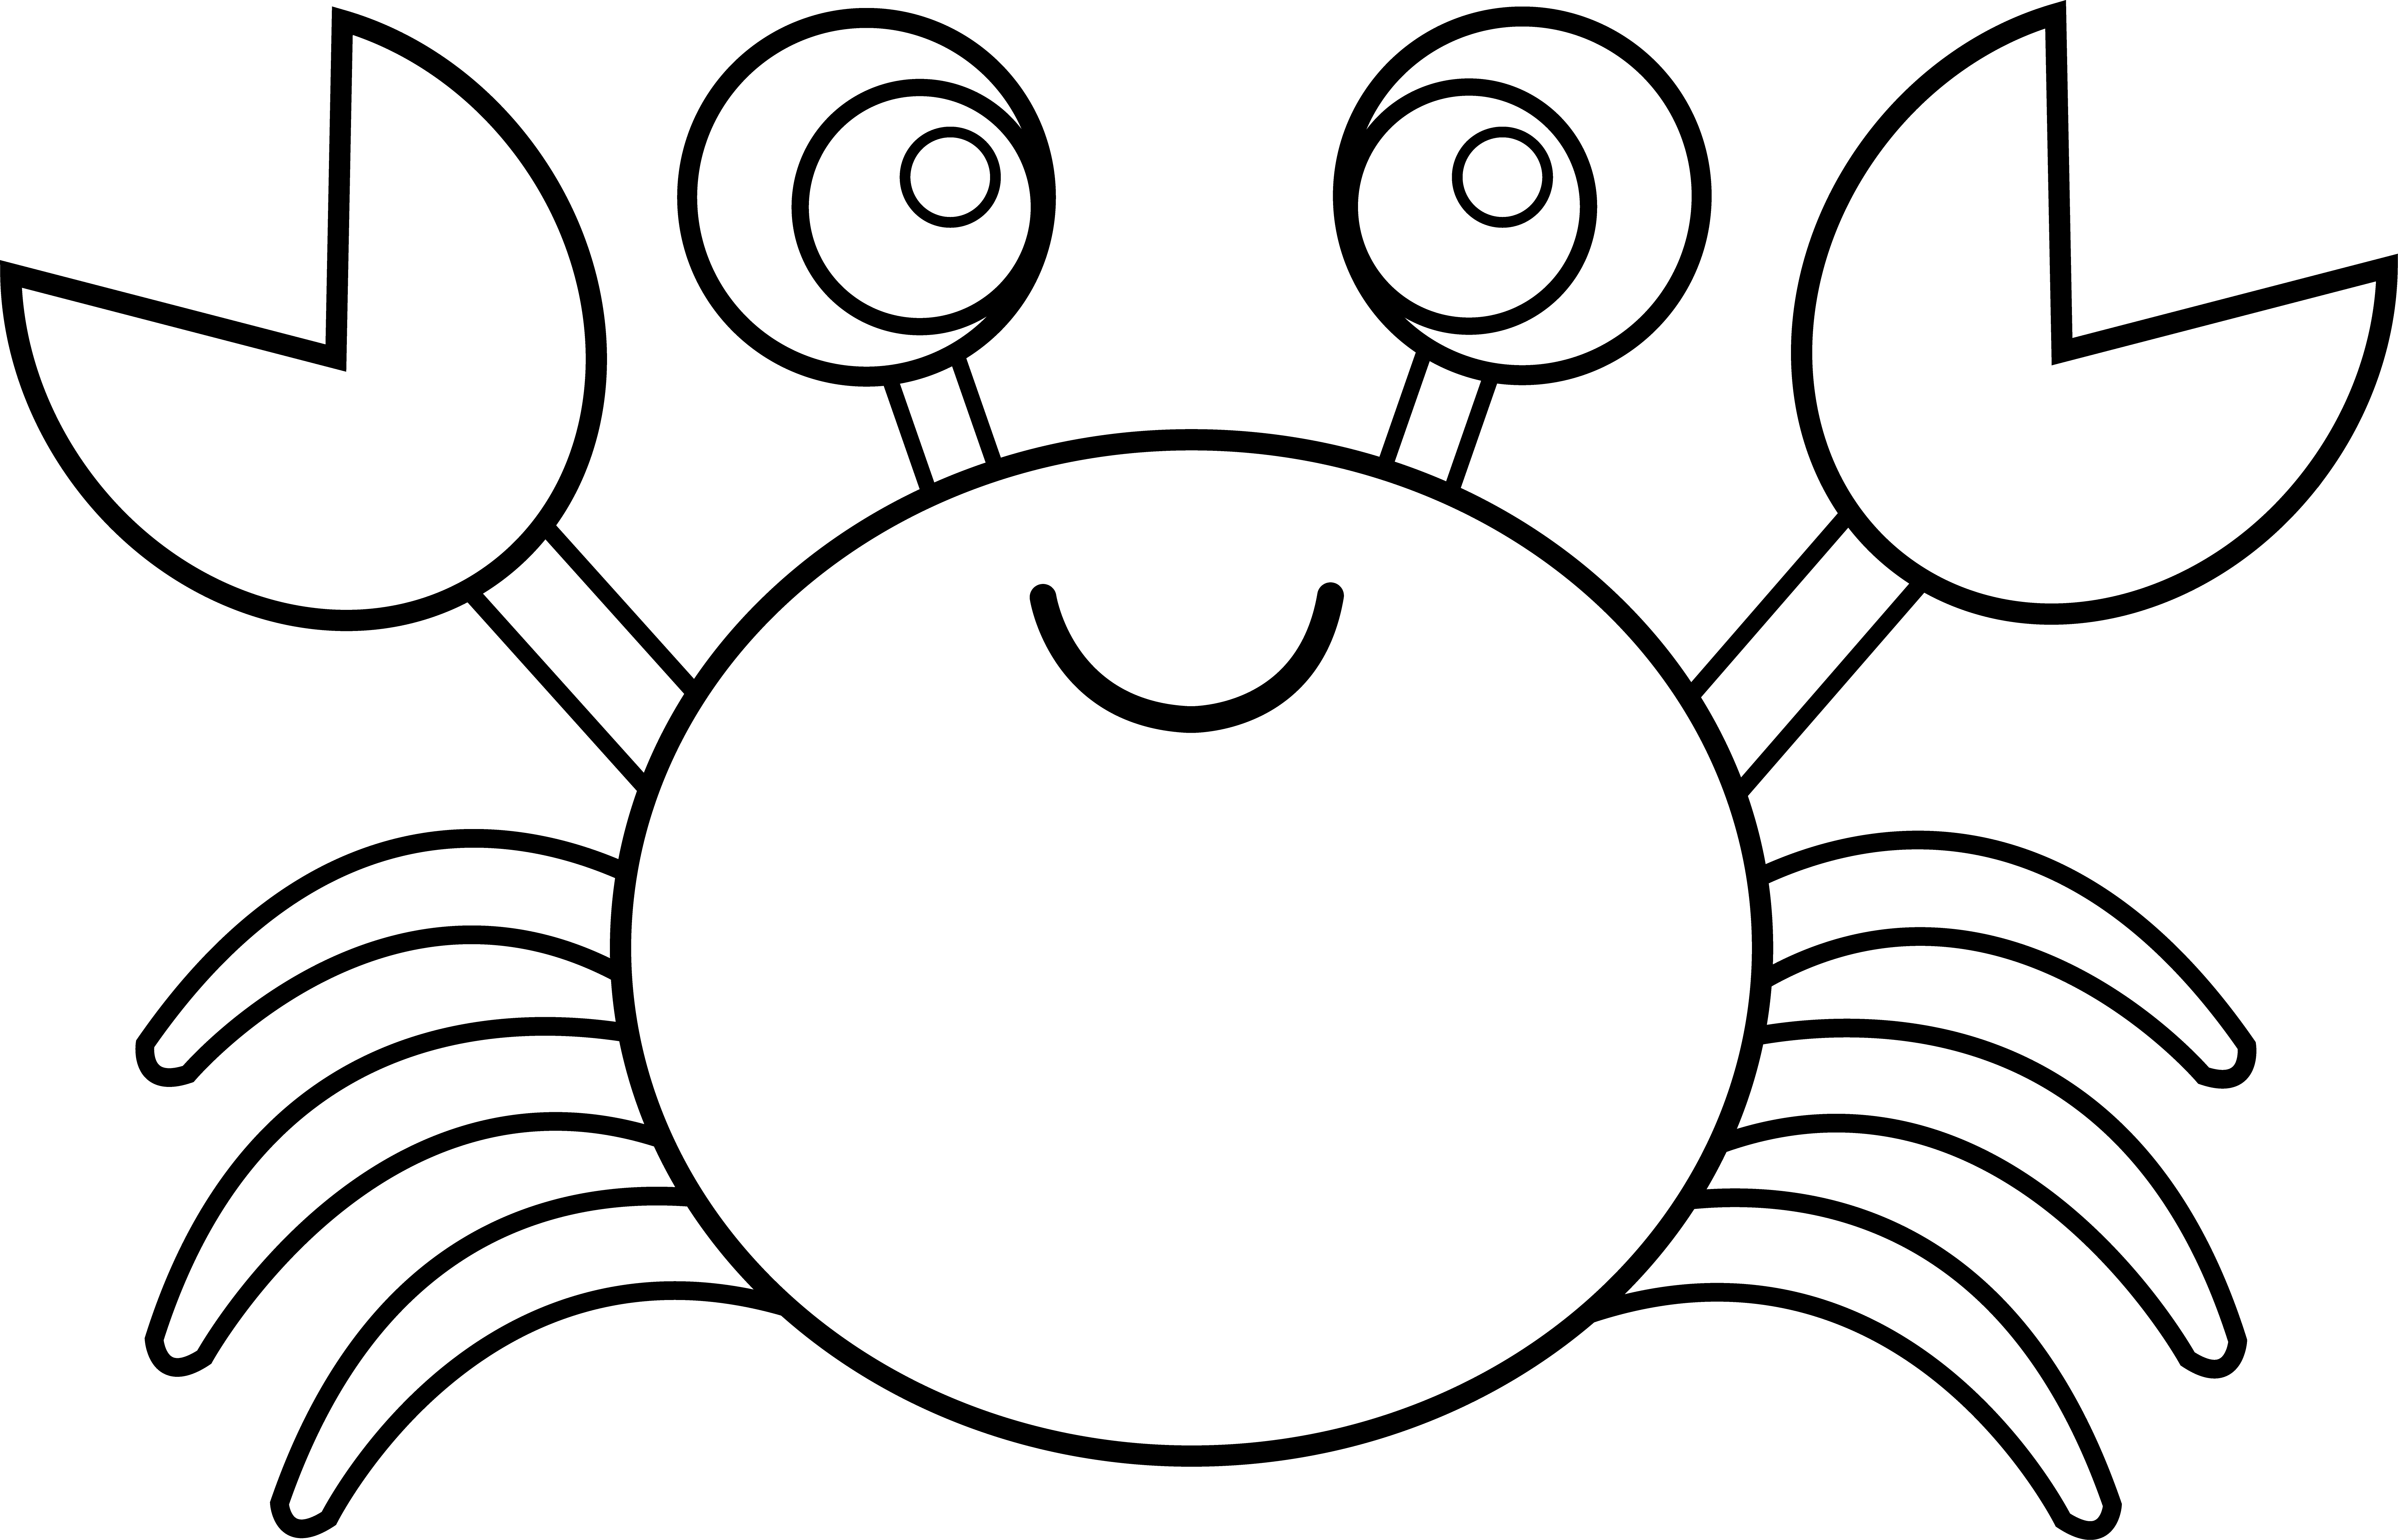 Cartoon Crab Drawing at GetDrawings.com | Free for personal use ...